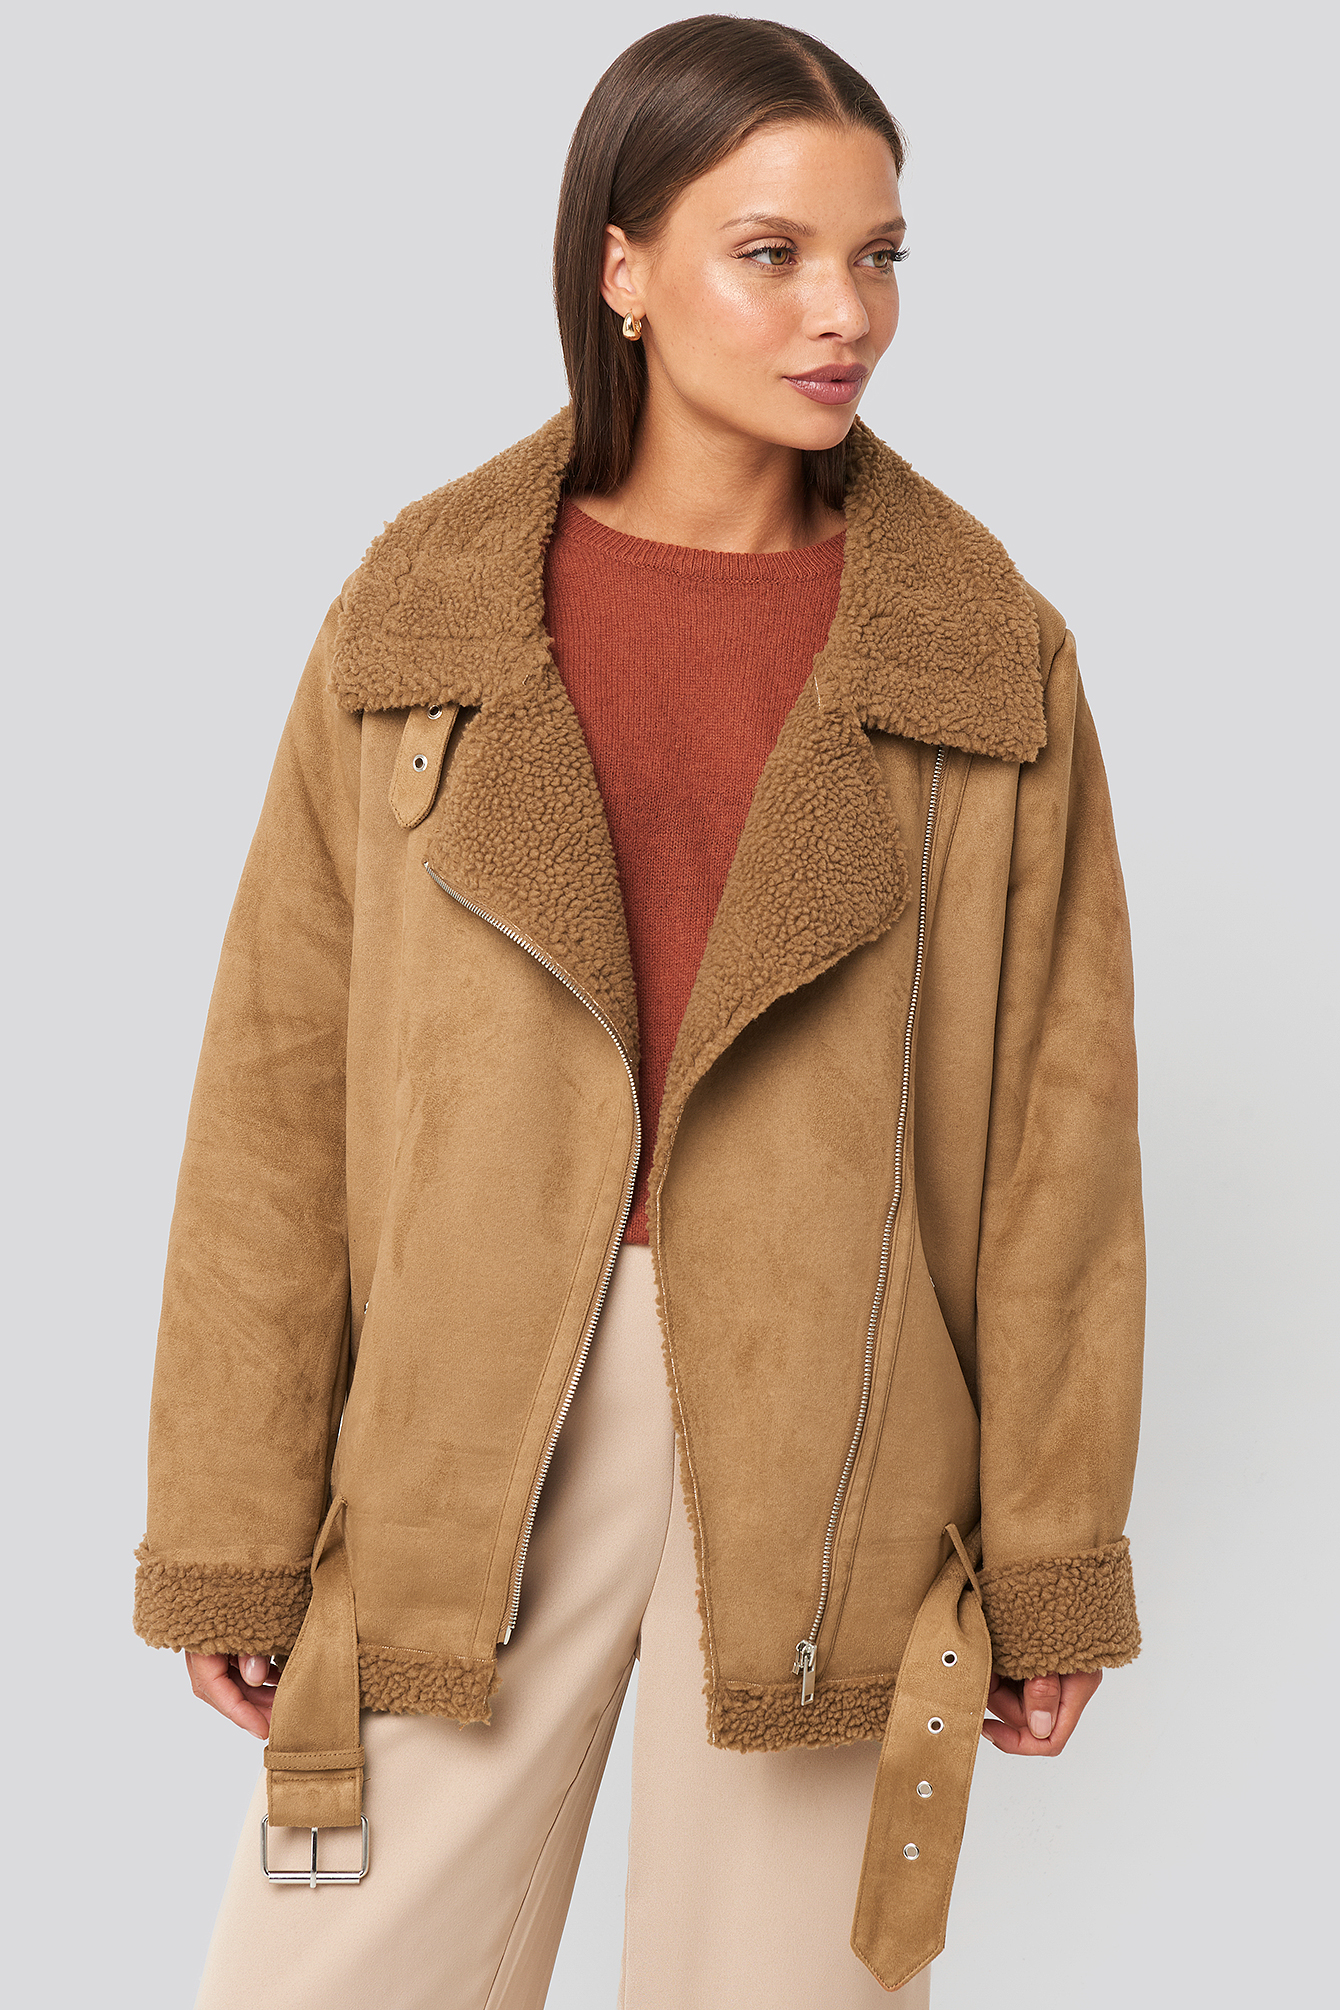 Fake Suede Bonded Aviator Jacket Bruin by Na Kd Trend